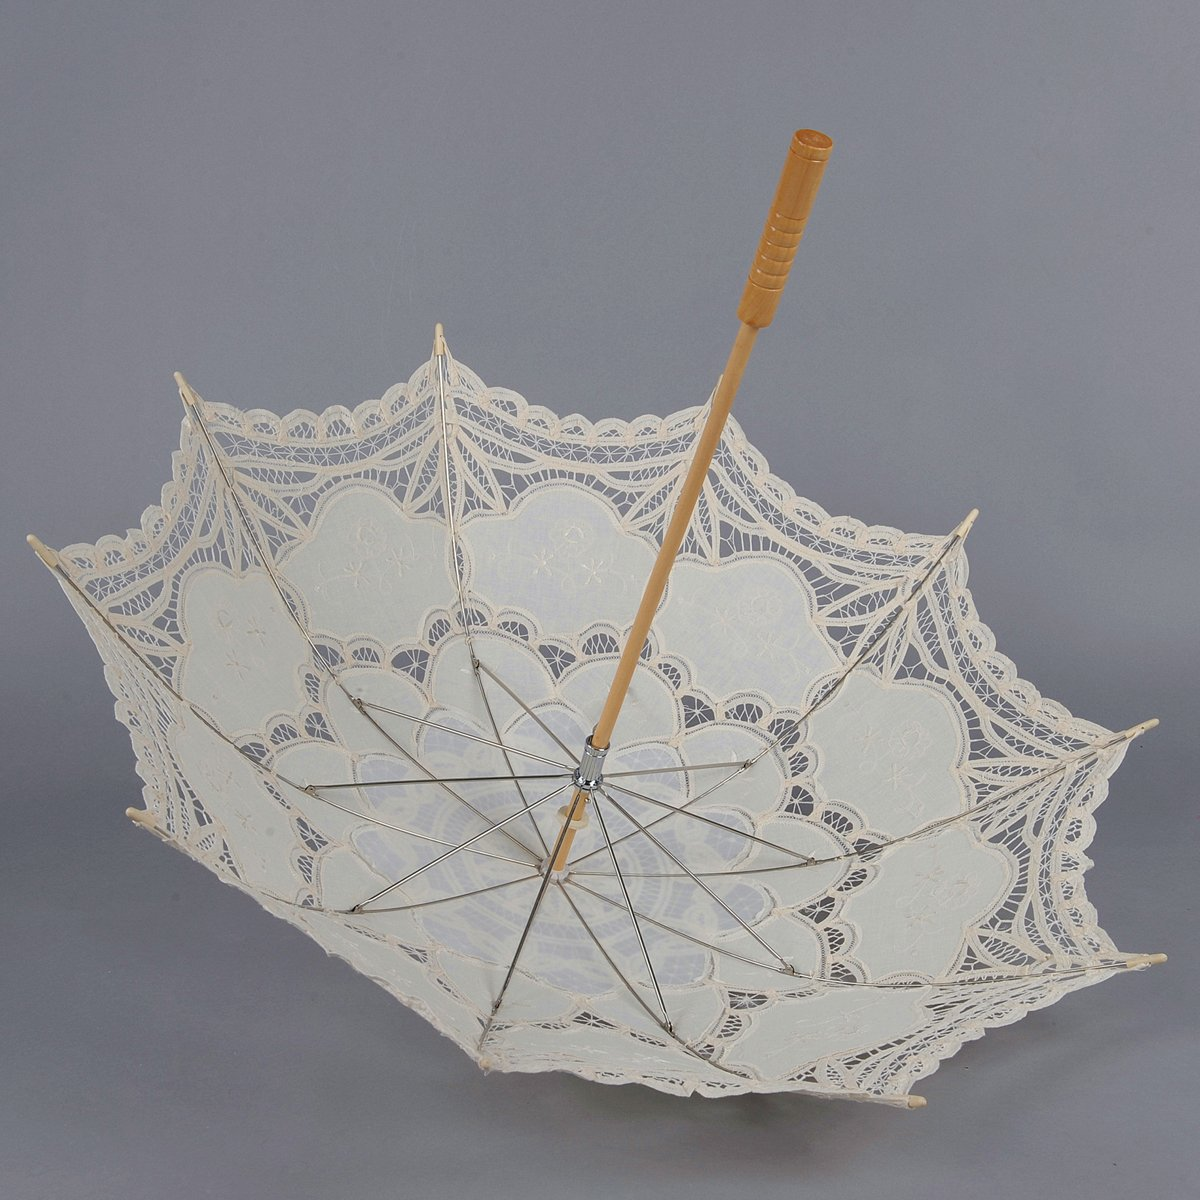 Artwedding Scallop Edge Embroidery Pure Cotton Lace Wedding Umbrella in Beige Onesize by Artwedding (Image #5)